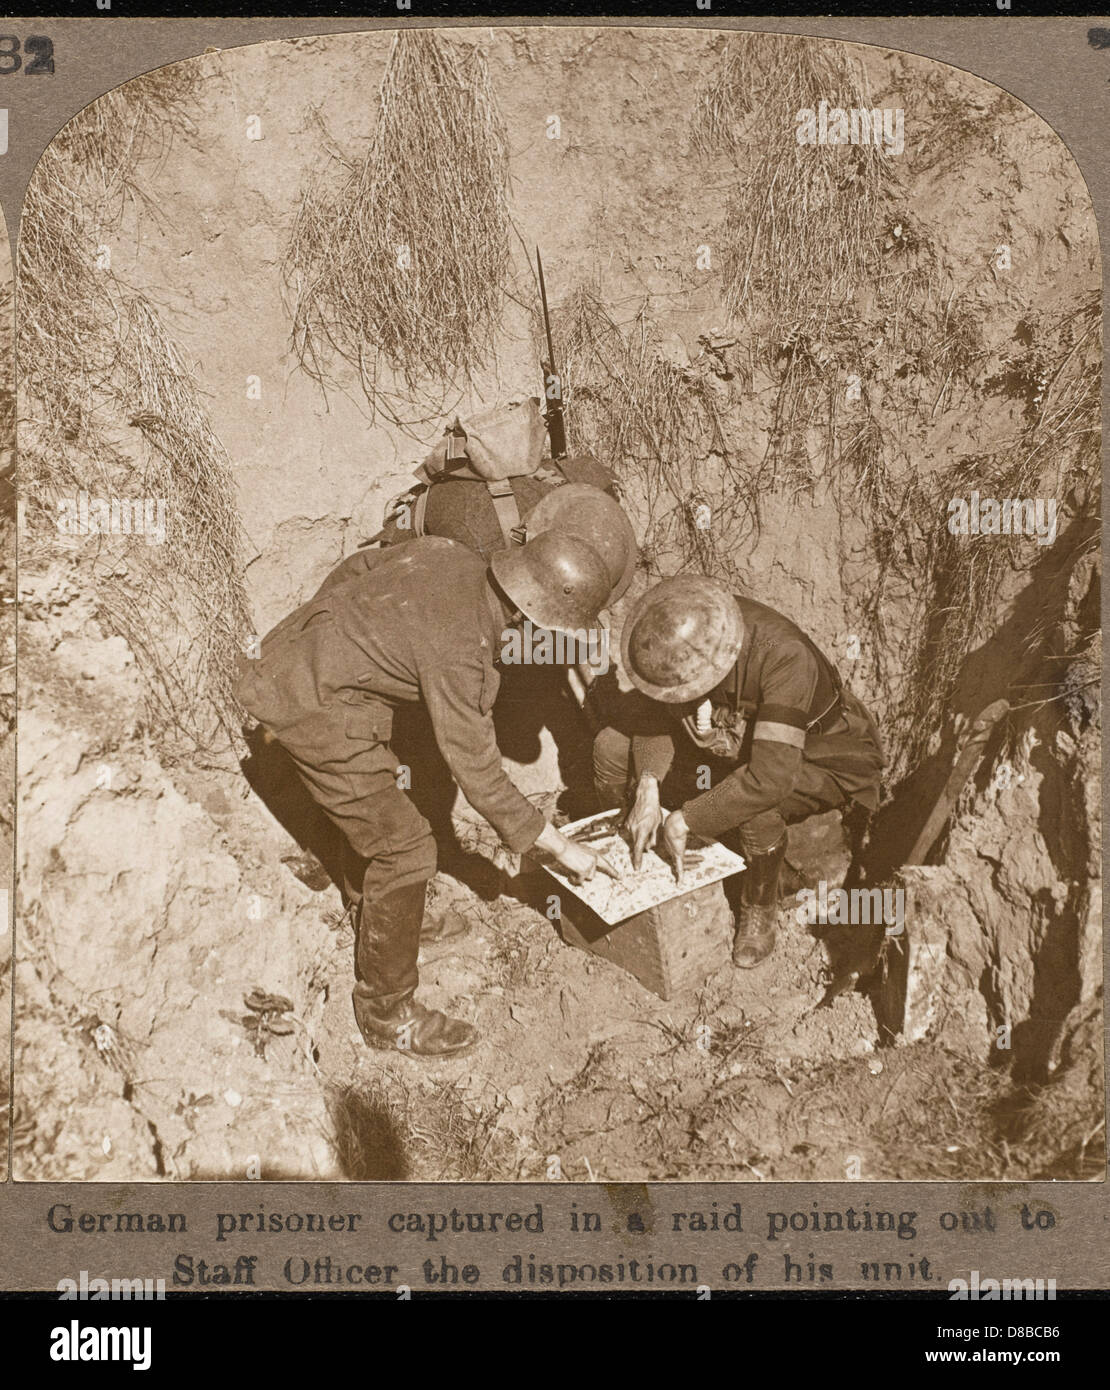 Examining Map In 1st Ww - Stock Image